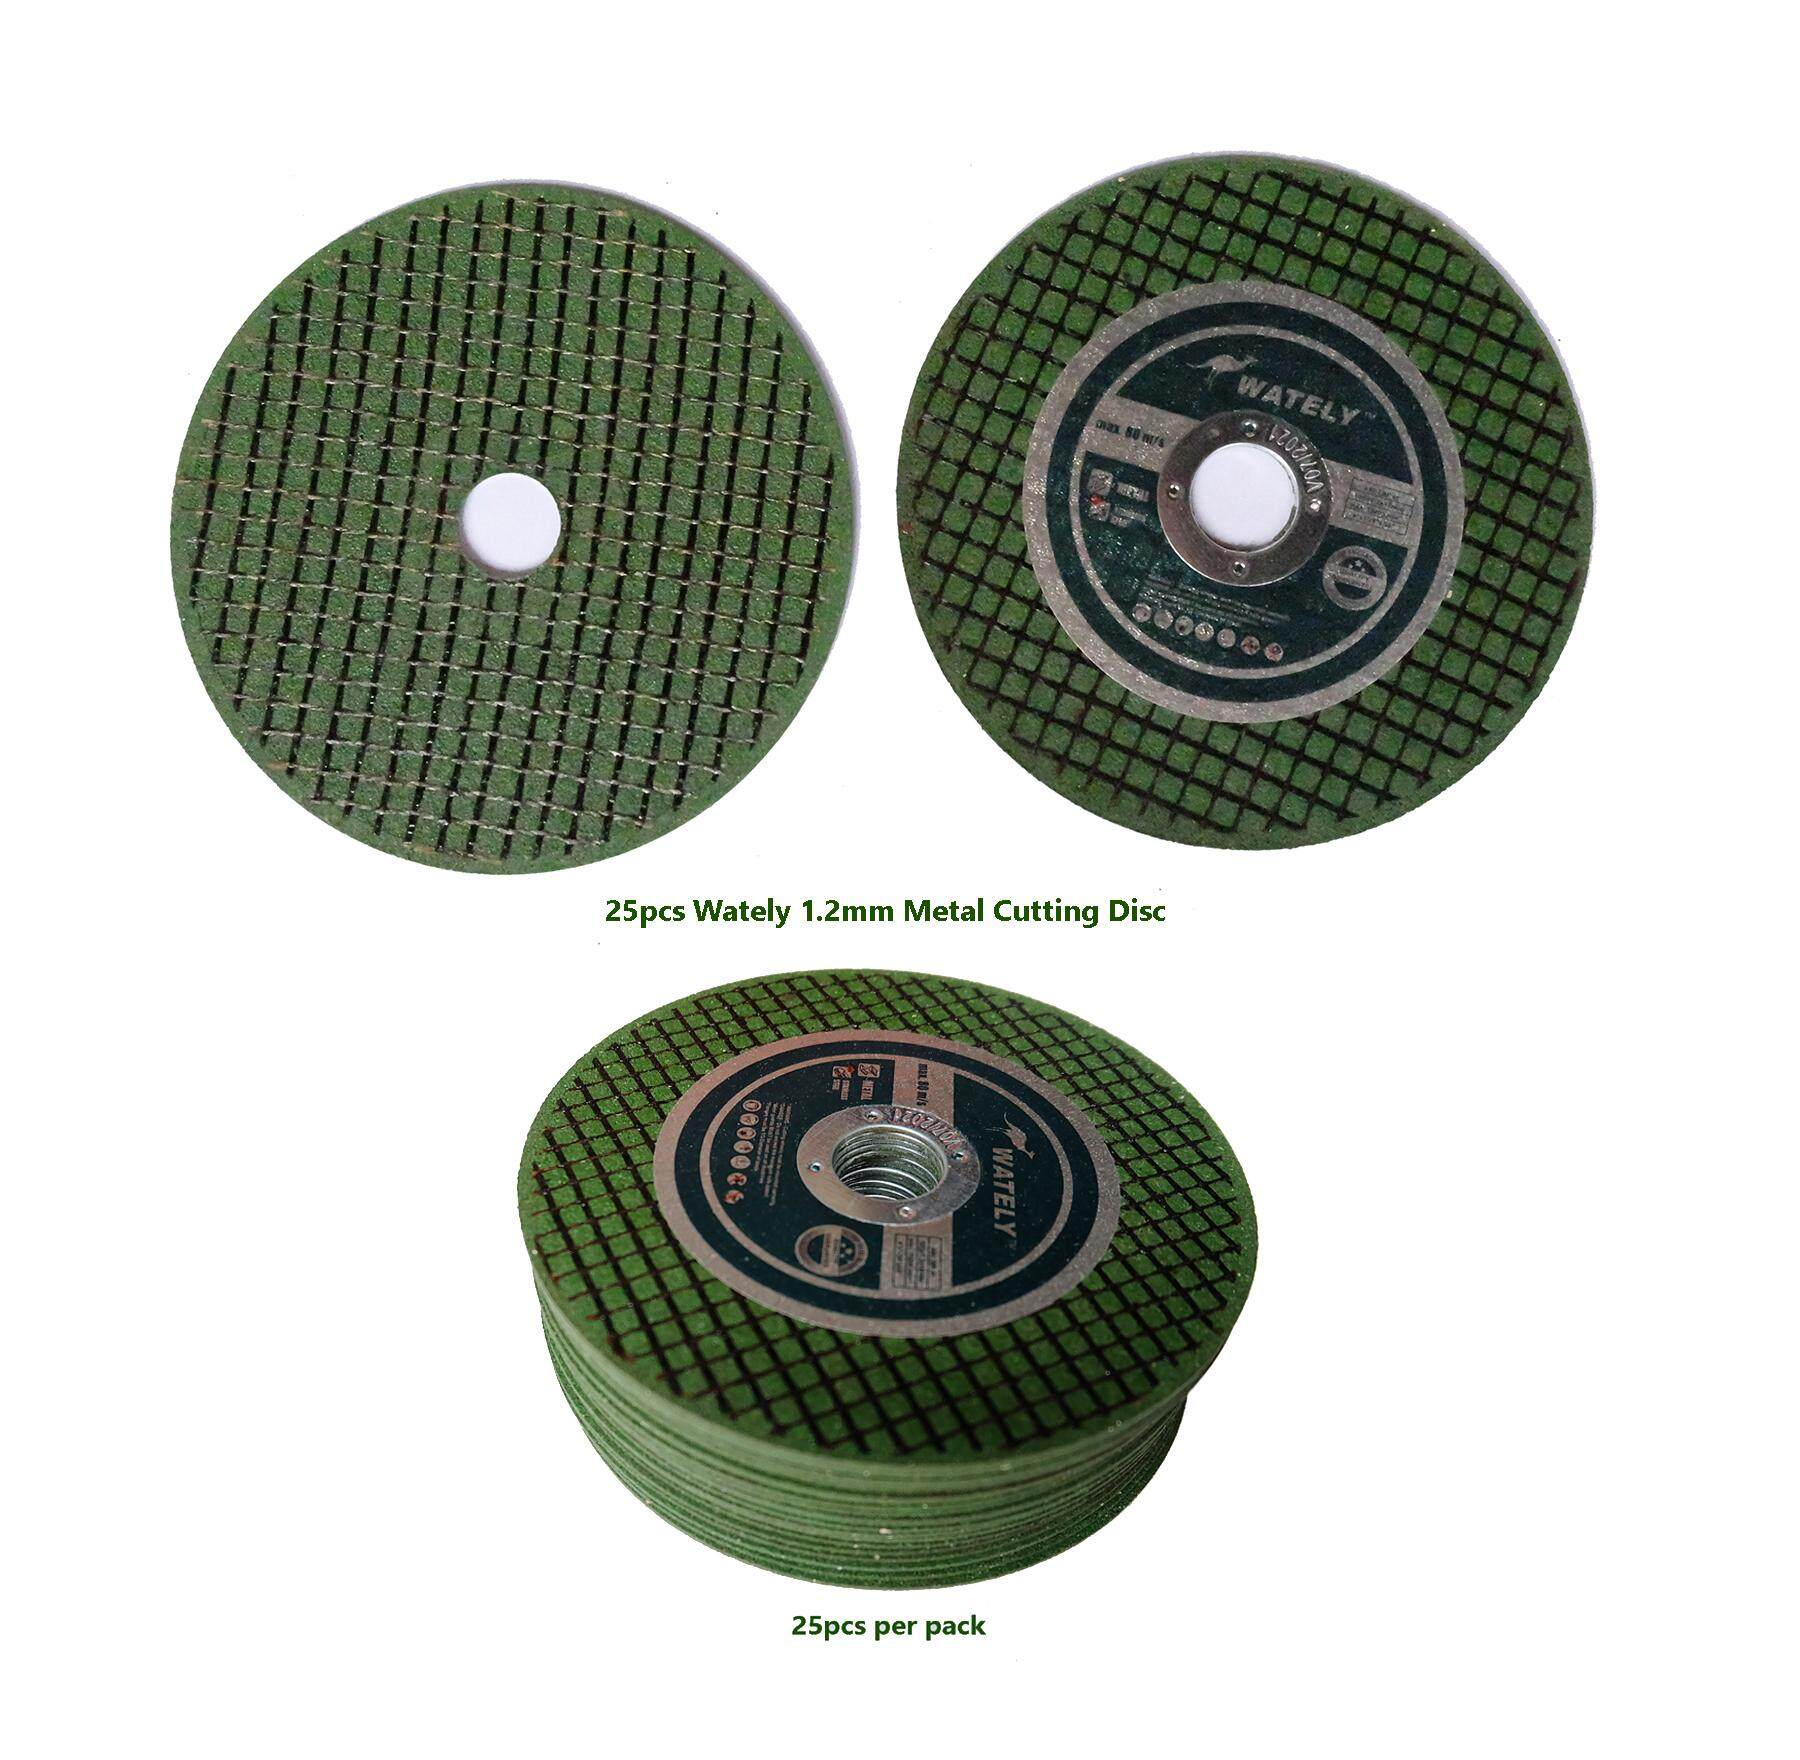 Wately Professional Metal Cuttings Disc Ultra Thin 25pcs for Angle Grinder